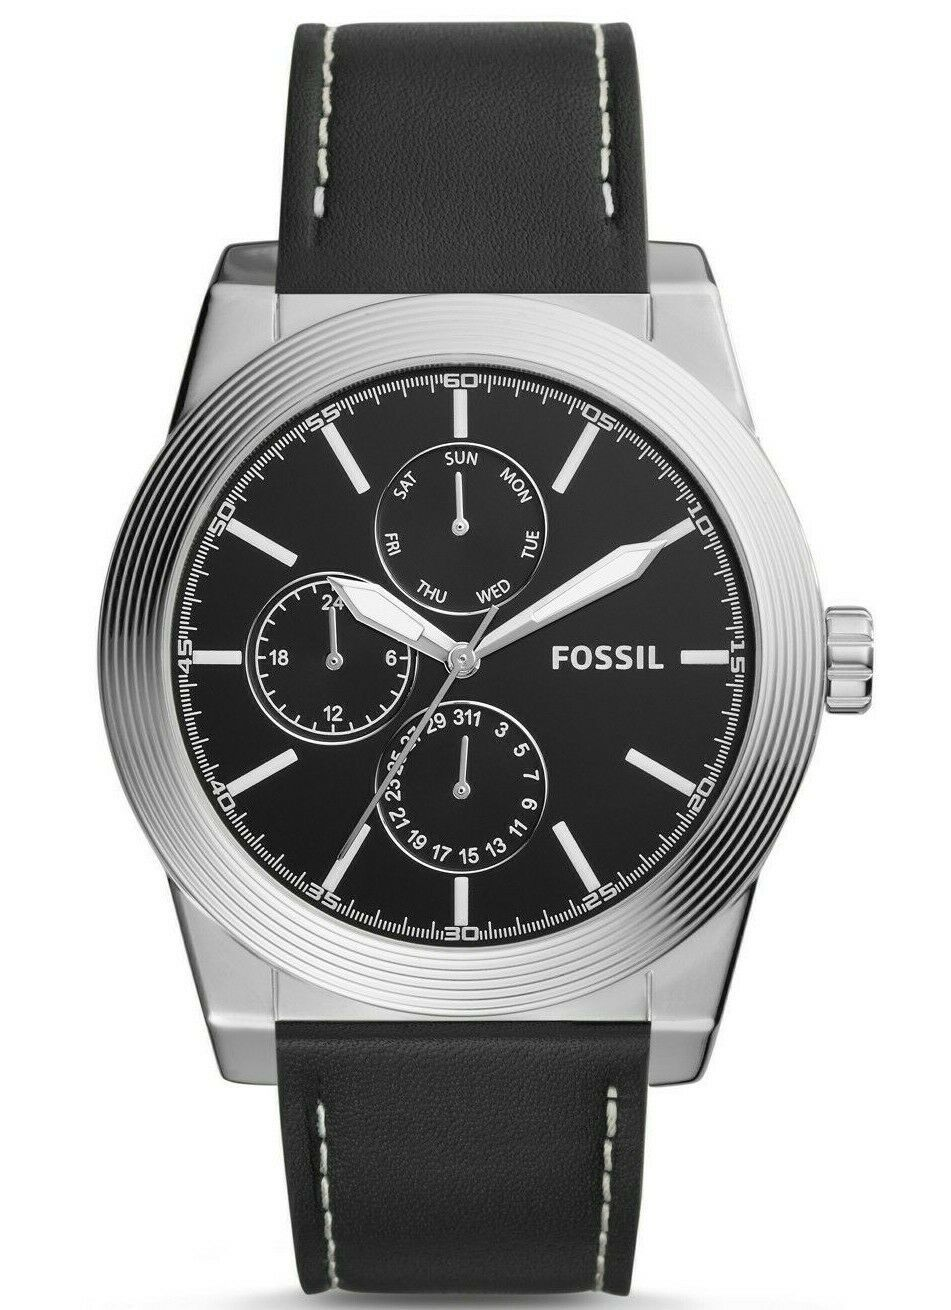 Primary image for FOSSIL Geoff Multifunction Black Leather Watch 46mm Watch BQ2334 Men's